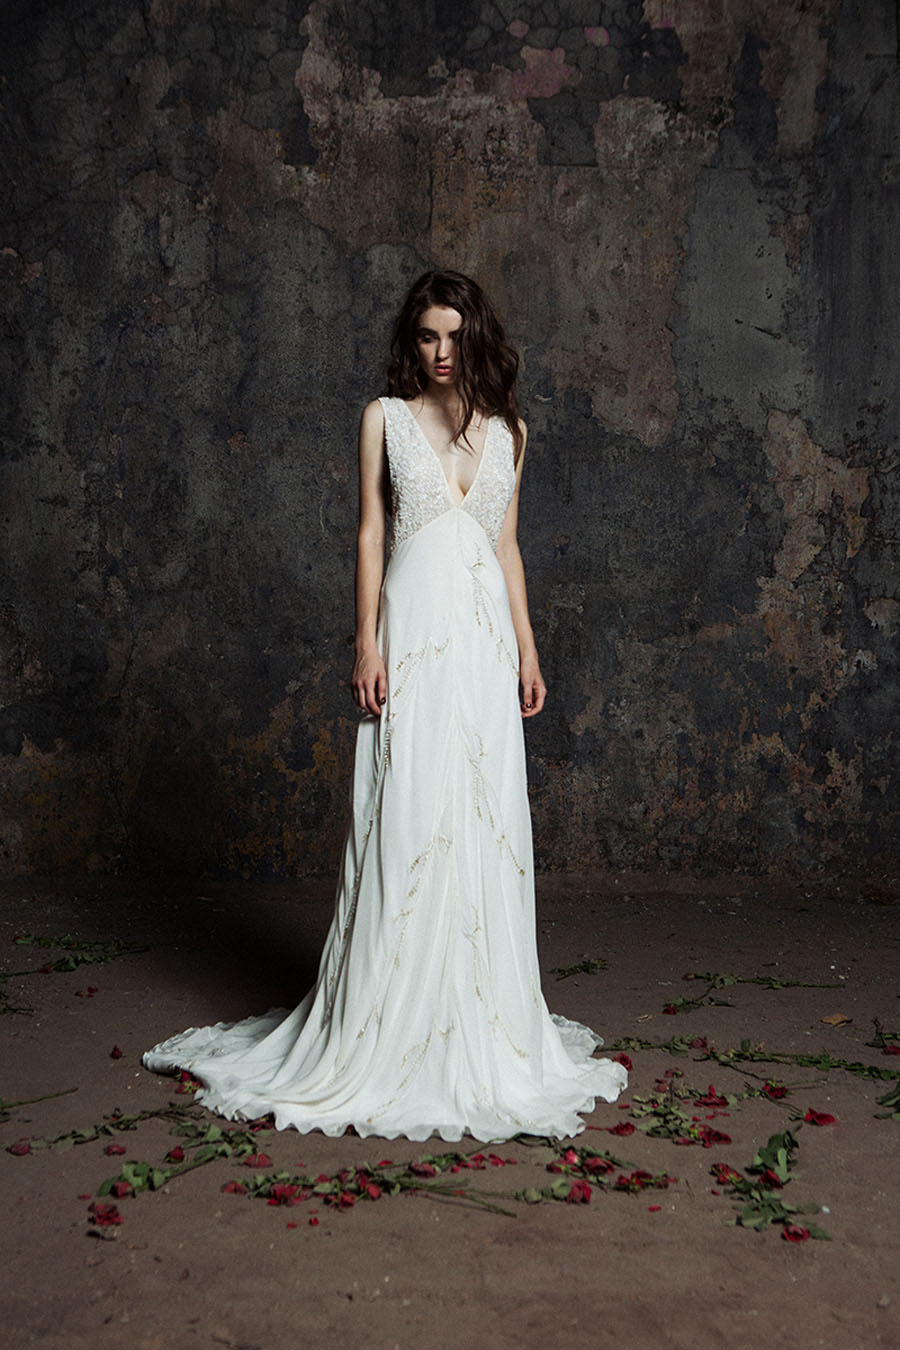 Boho Bridal Crush! Bo & Luca Wedding Dress Collection - Cassiopeia